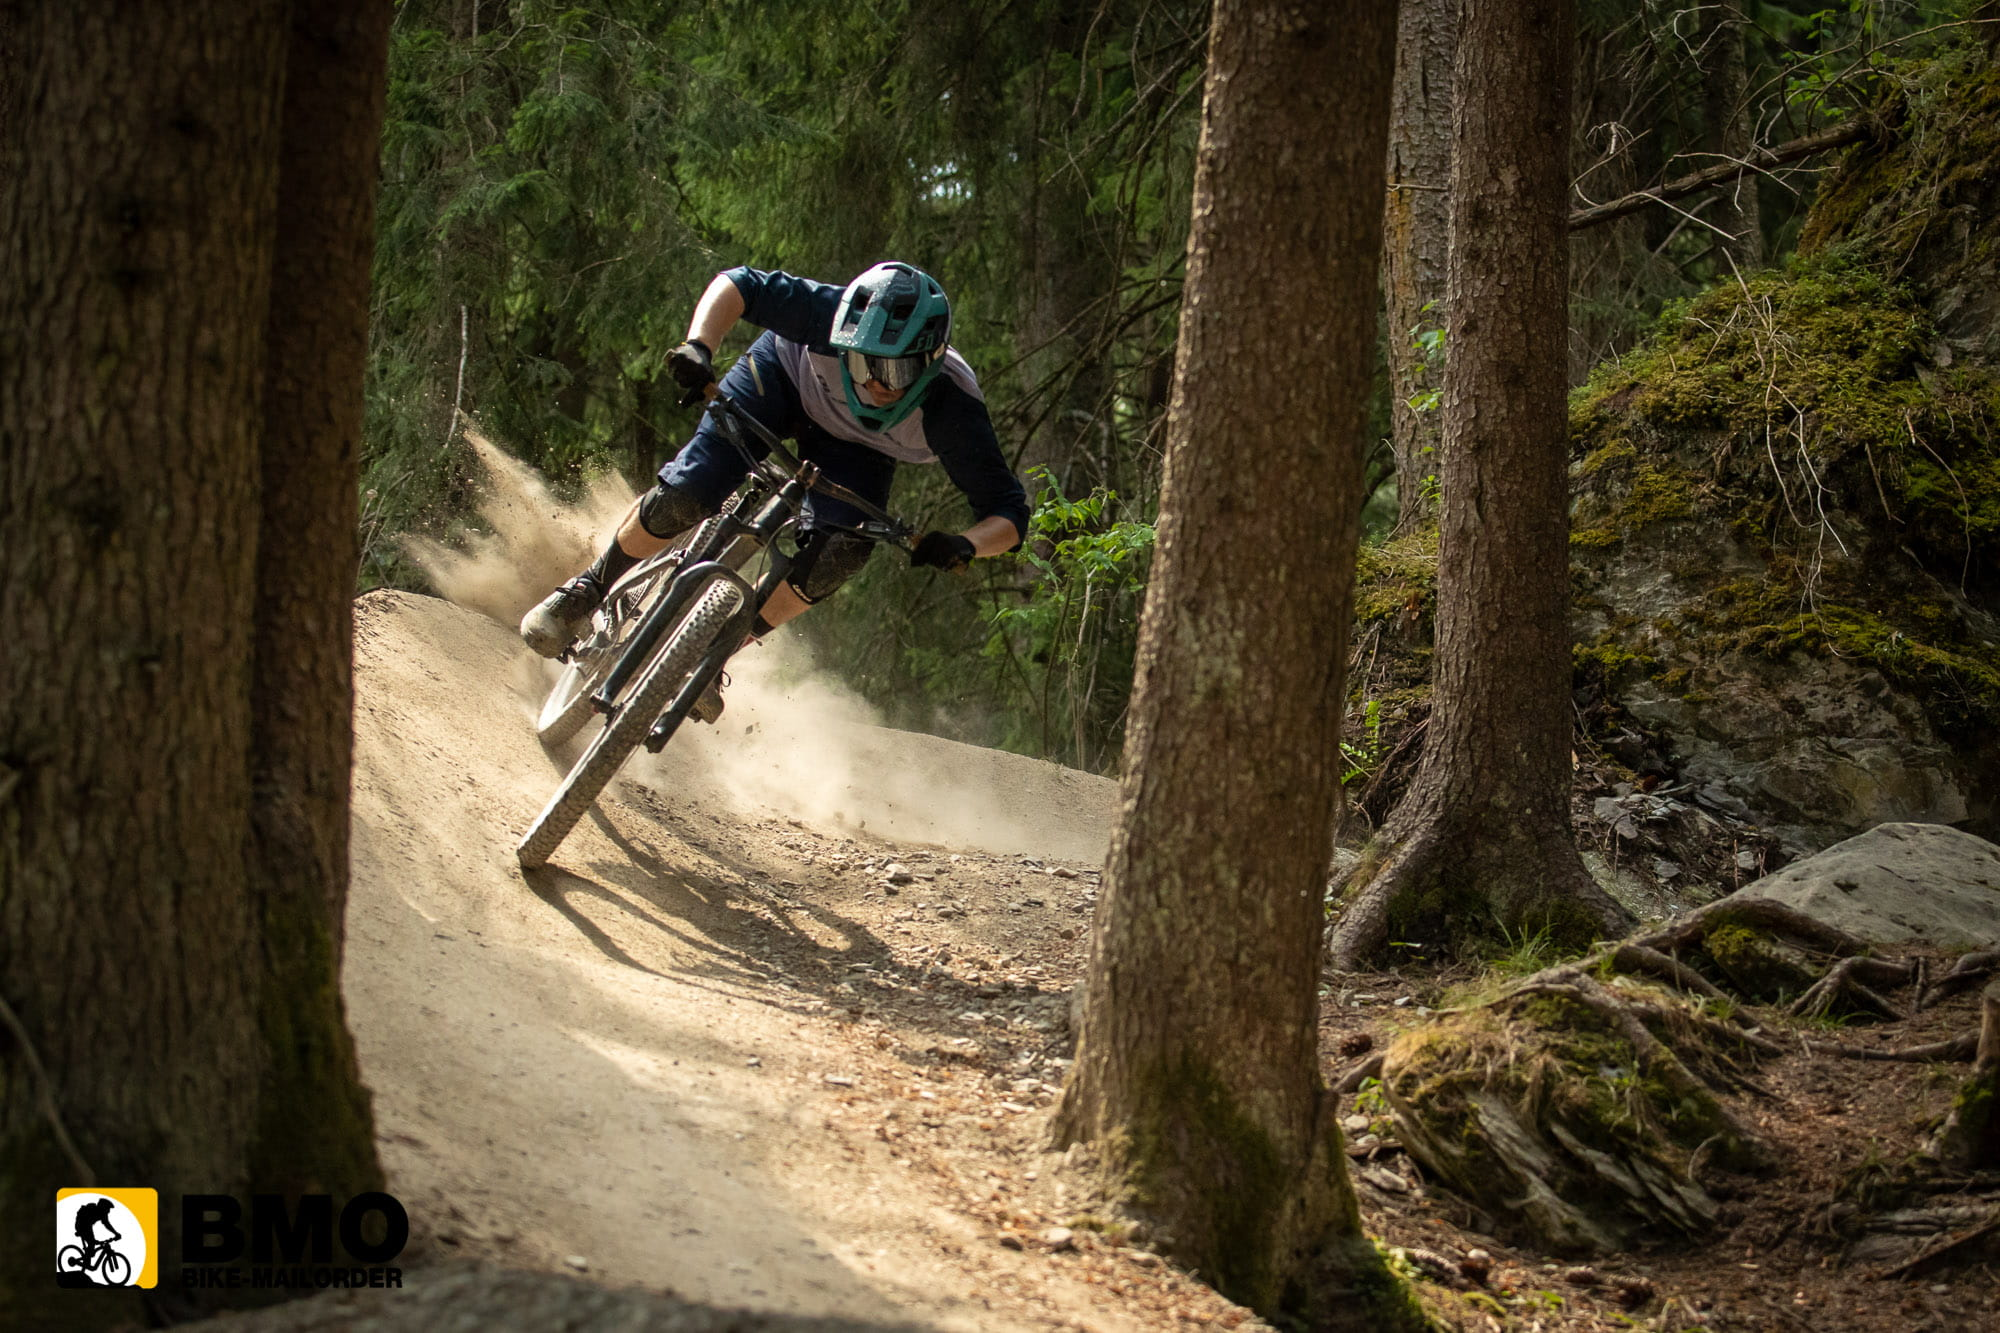 BMO_Home-of-Trails-Flims-Bike-Mailorder-13